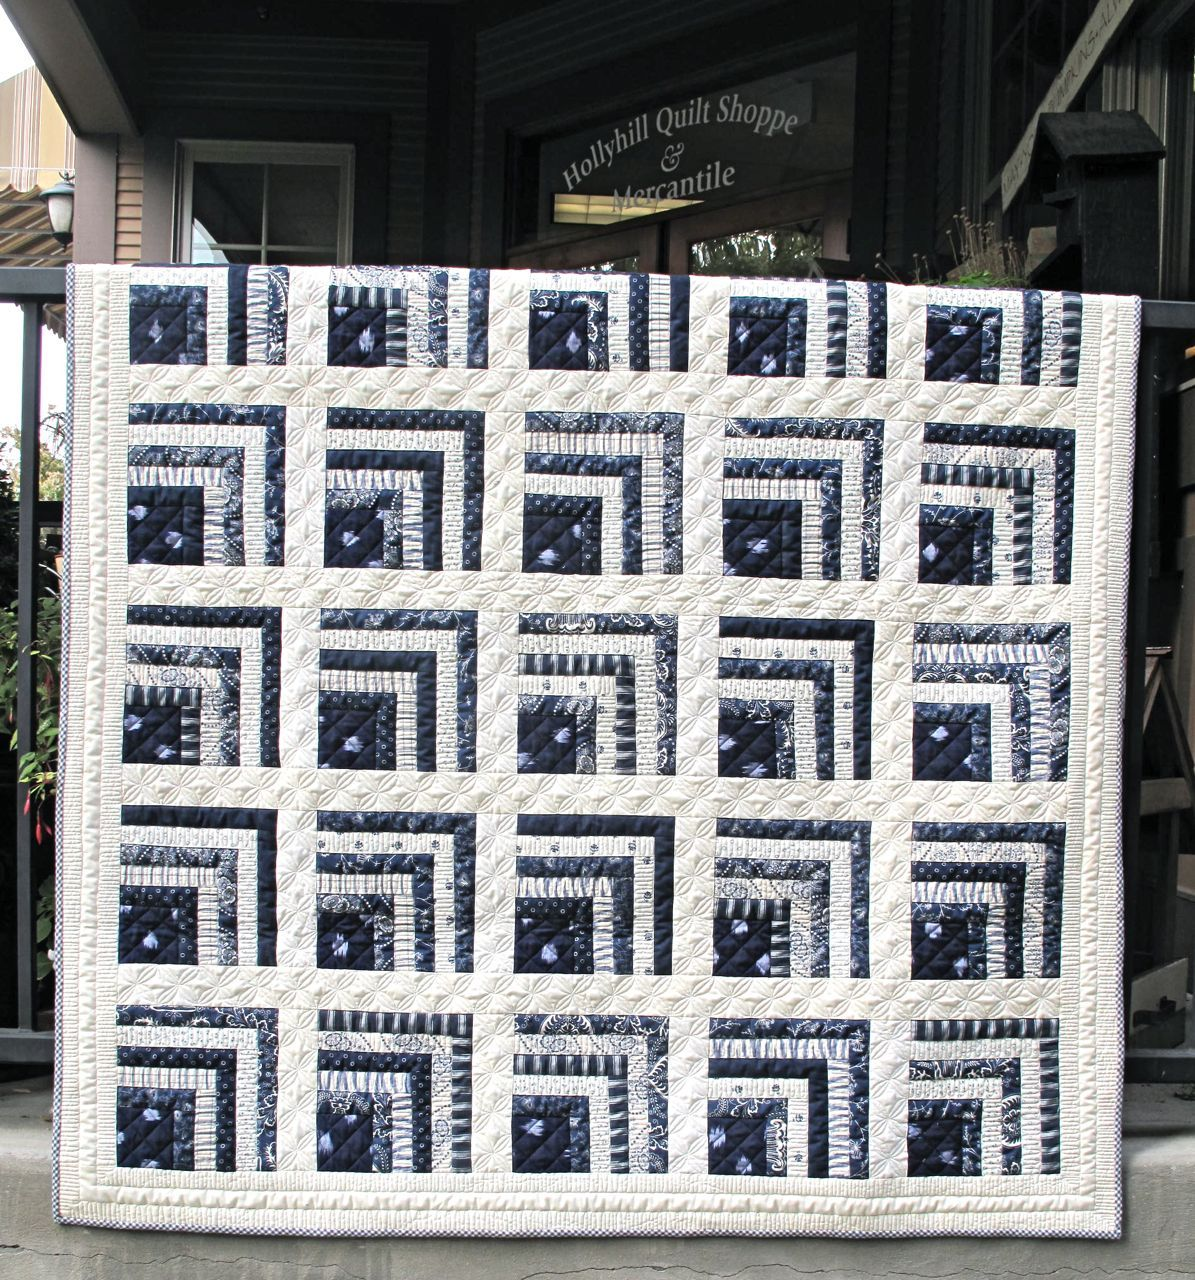 Hollyhill Quilt Shoppe Mercantile Llc Indigo Quilt Quilts Log Cabin Quilts